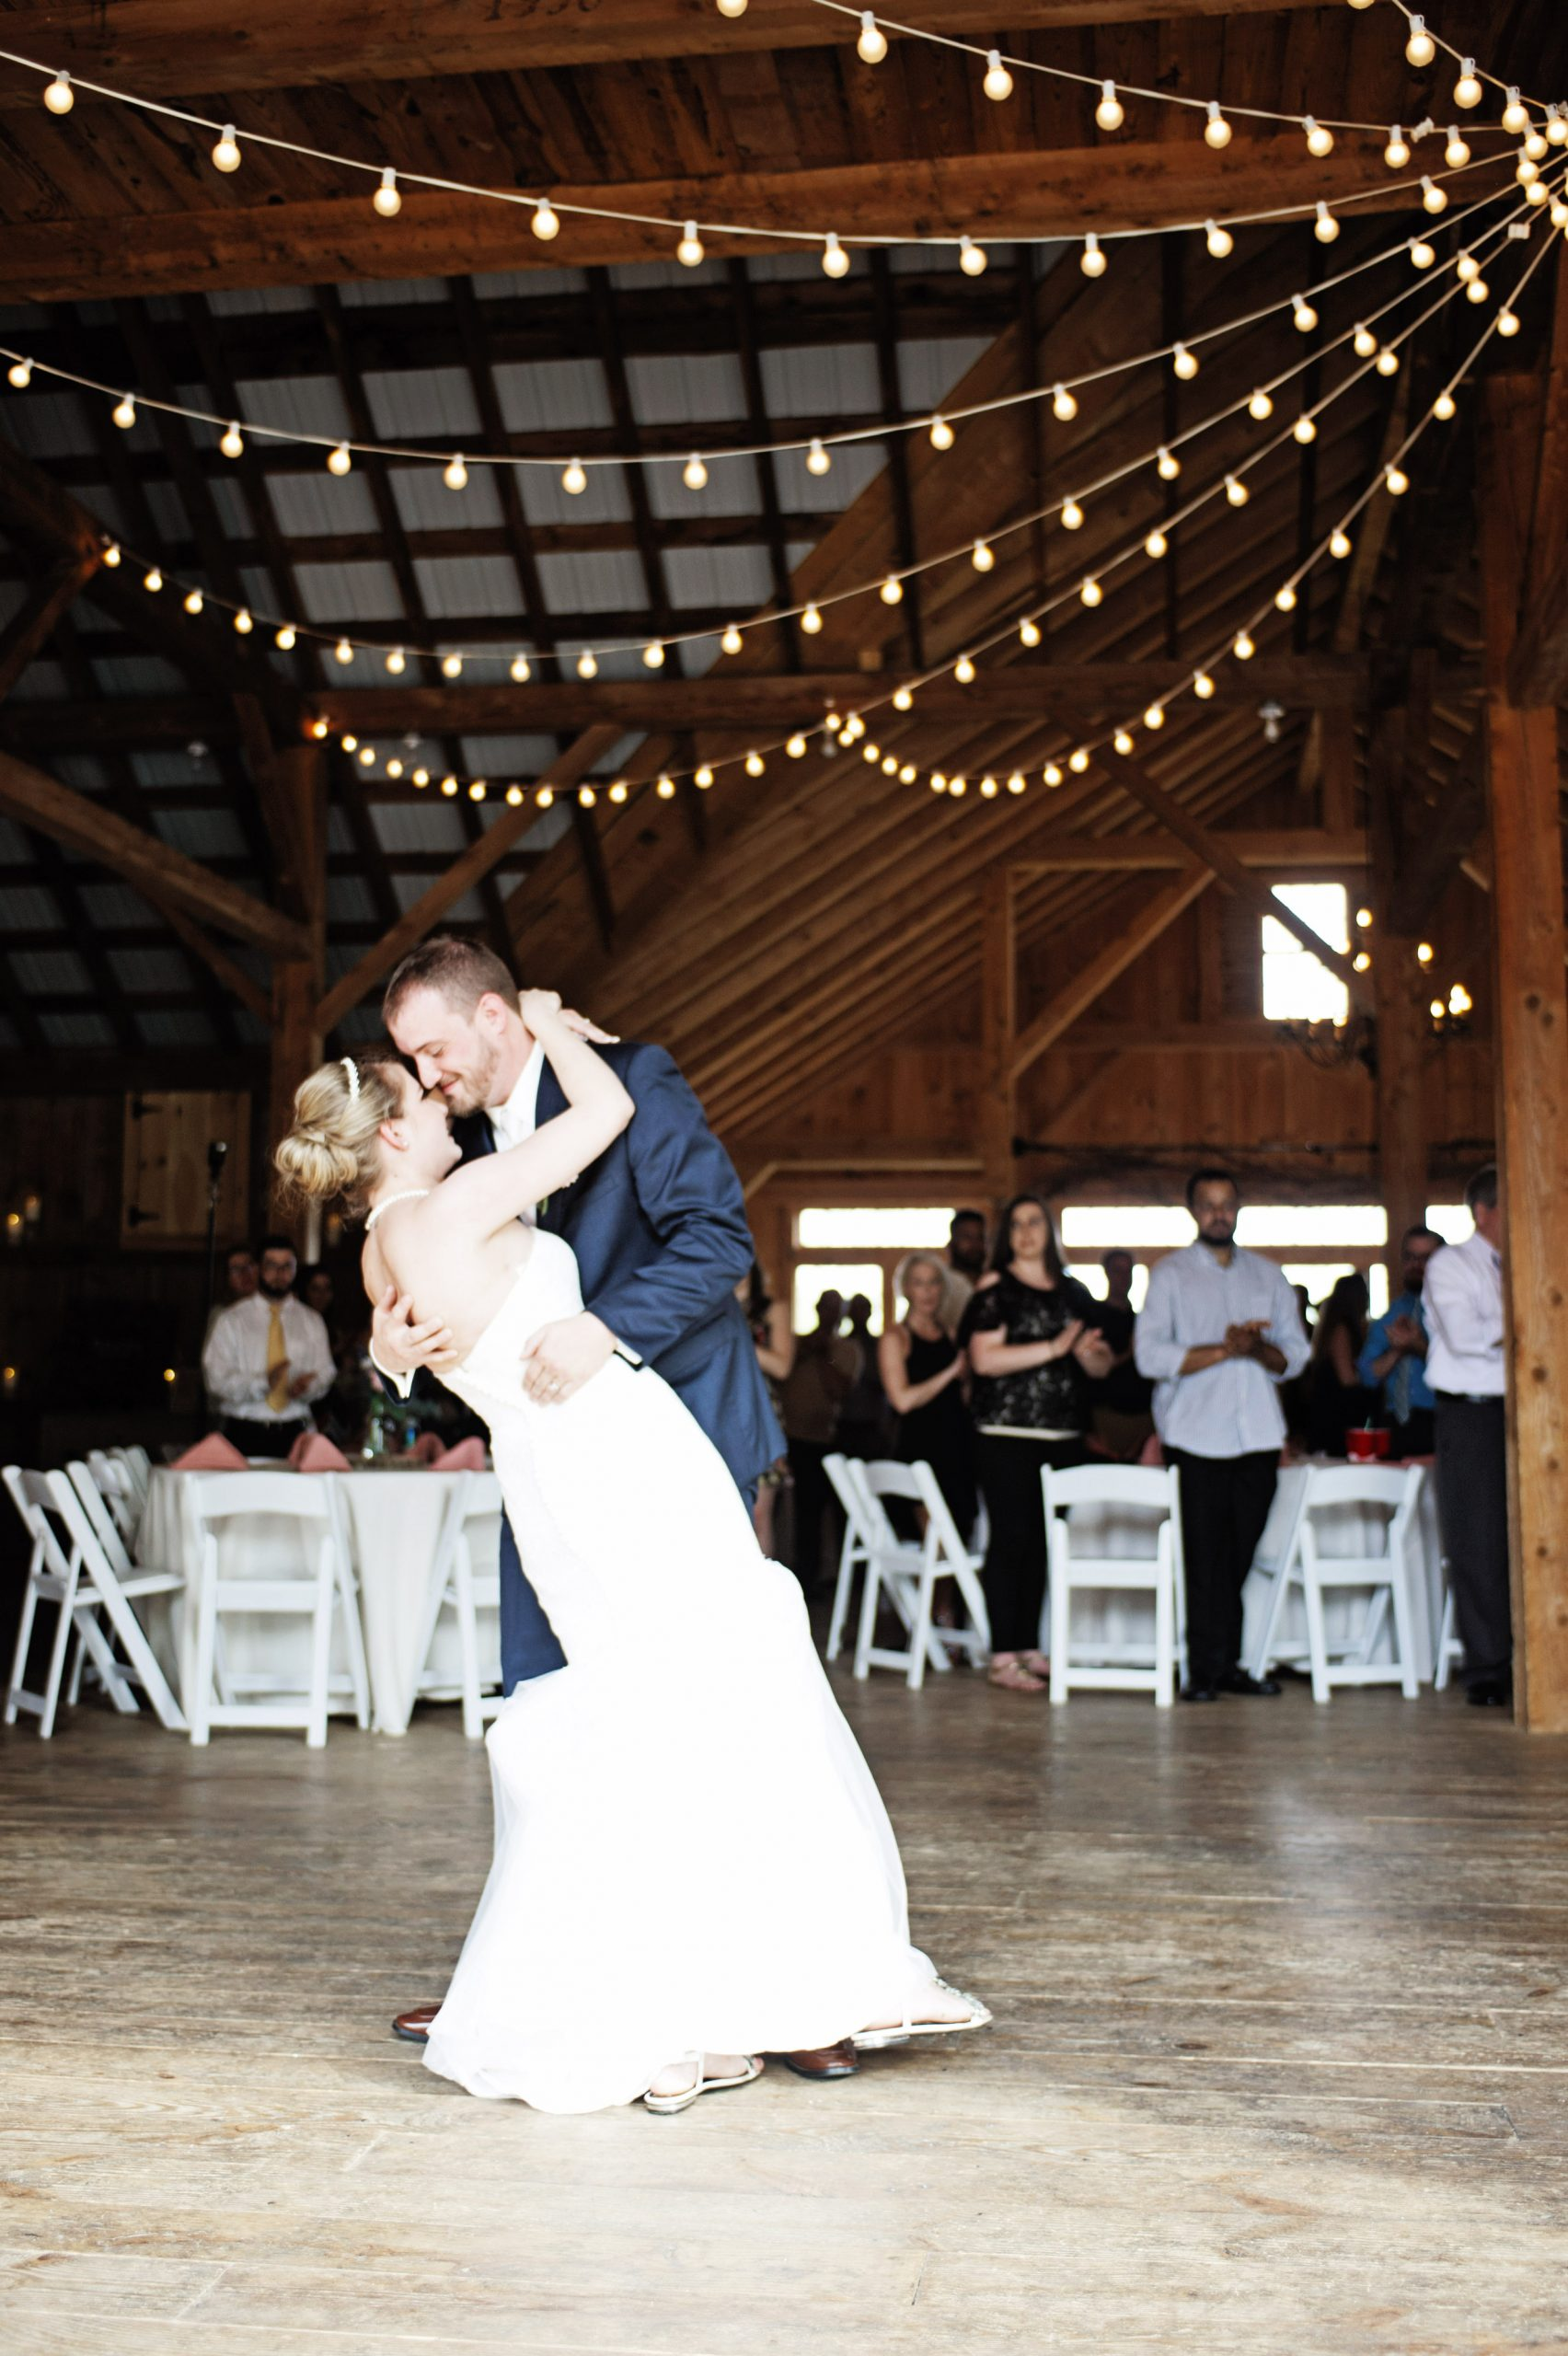 the first dance setting the tone at Lakeview Farms of York, PA. Lovefusion Photography effortlessly snapshotting this moment. Featured on Dream Weddings.